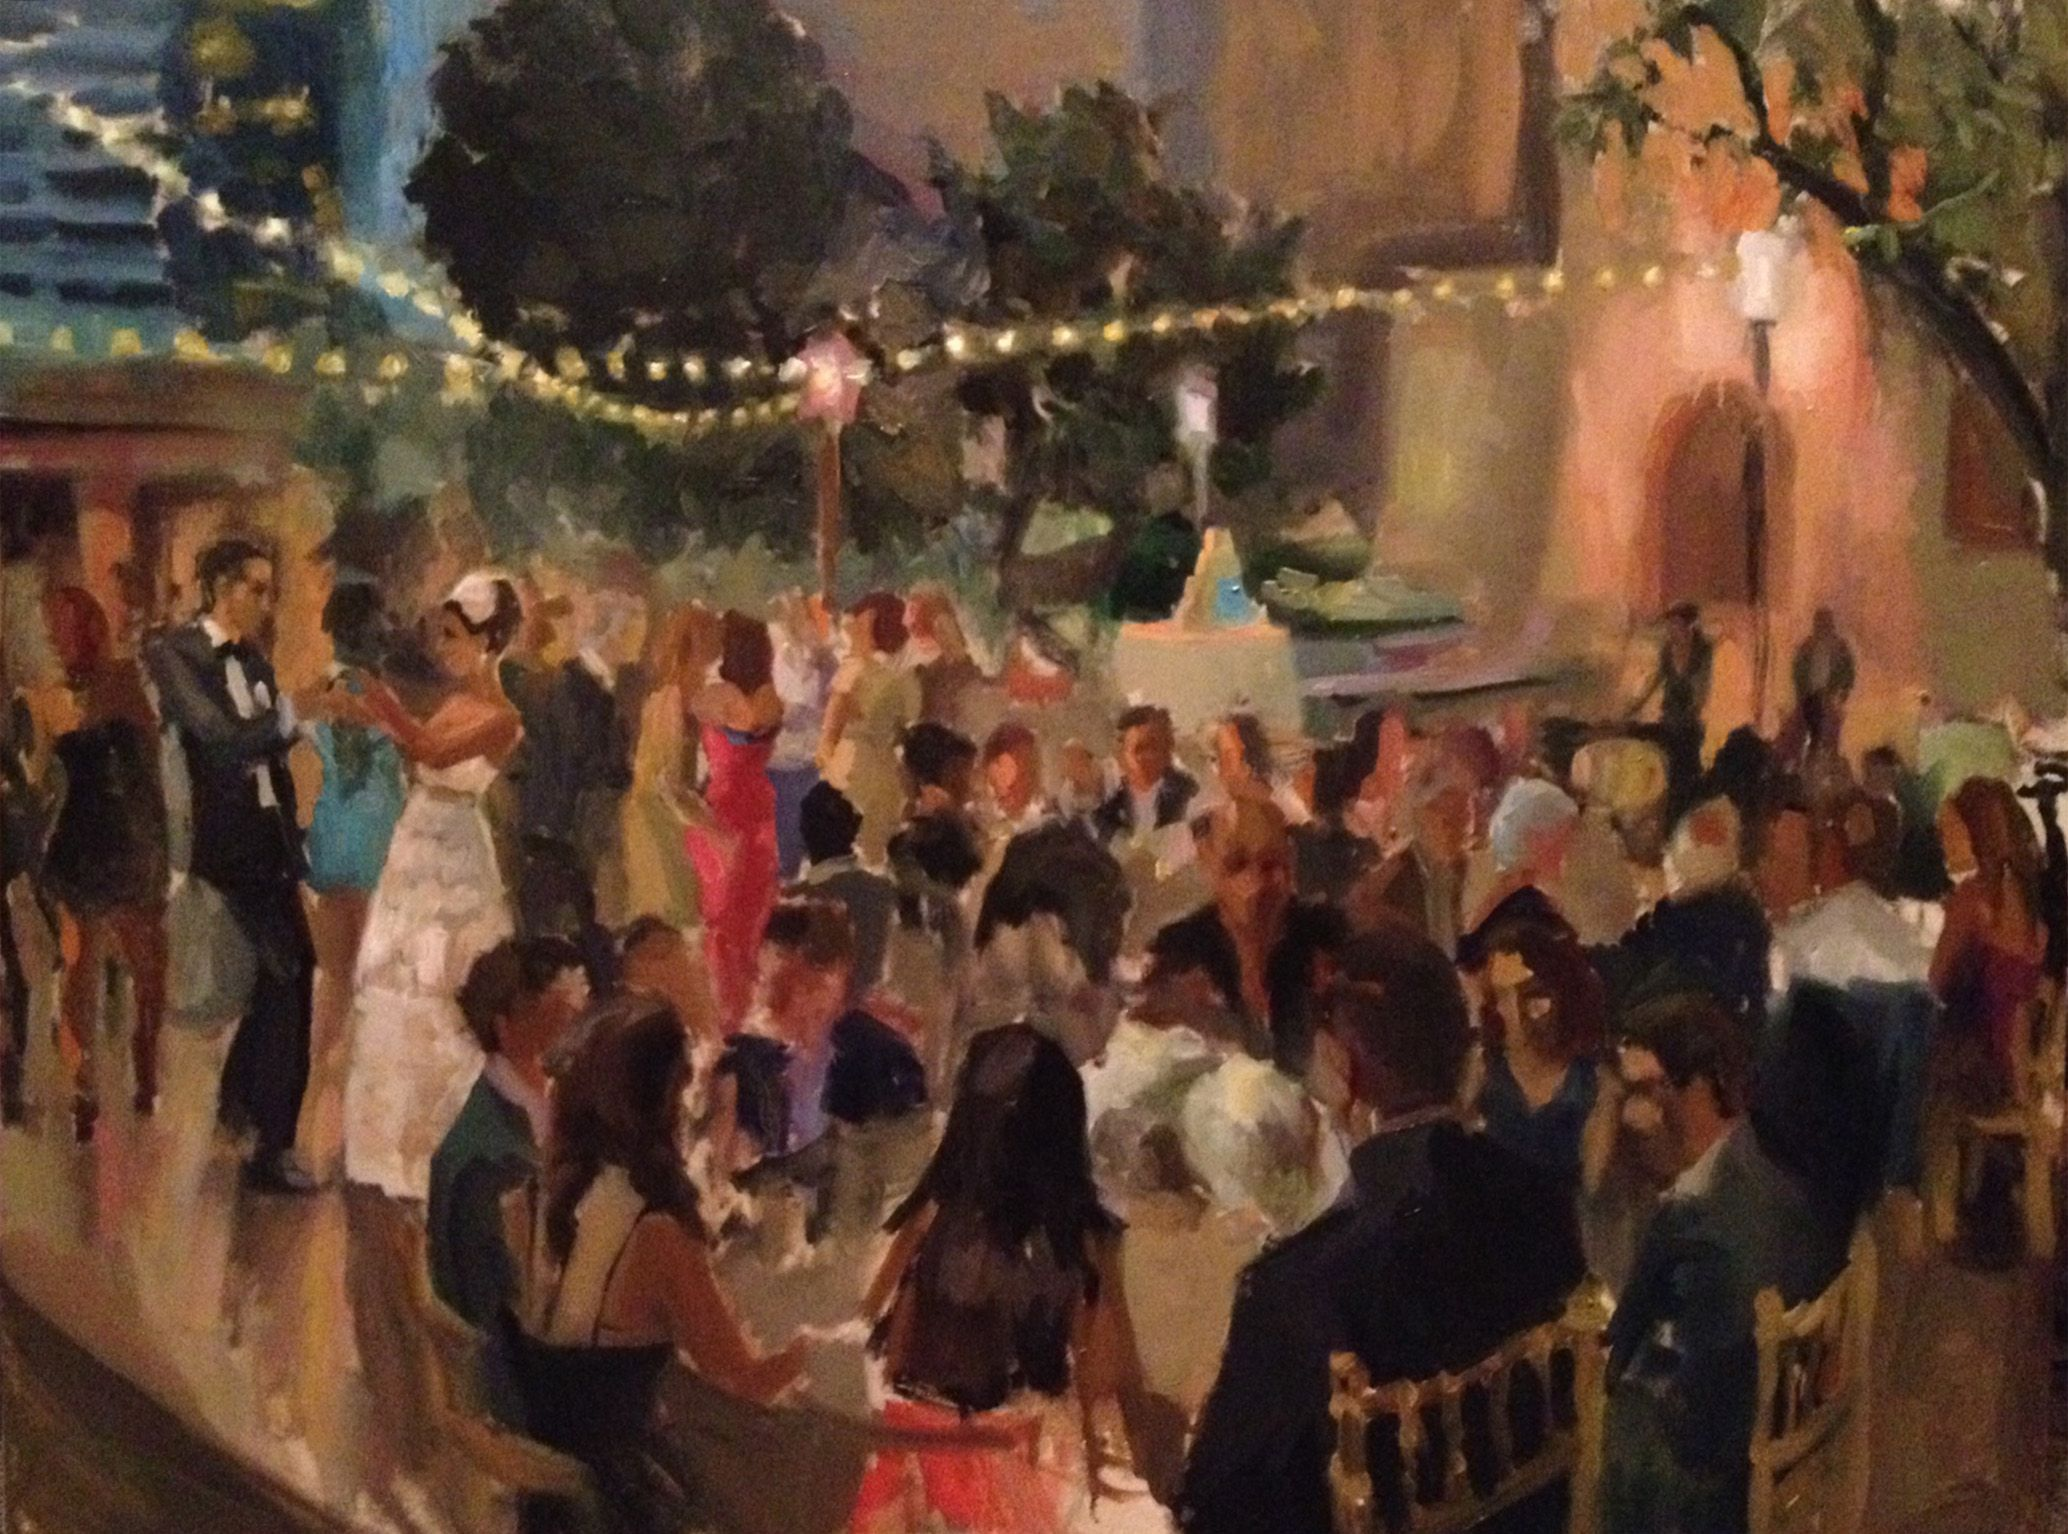 Painted this night scene of an outdoor Persian Wedding in the ...